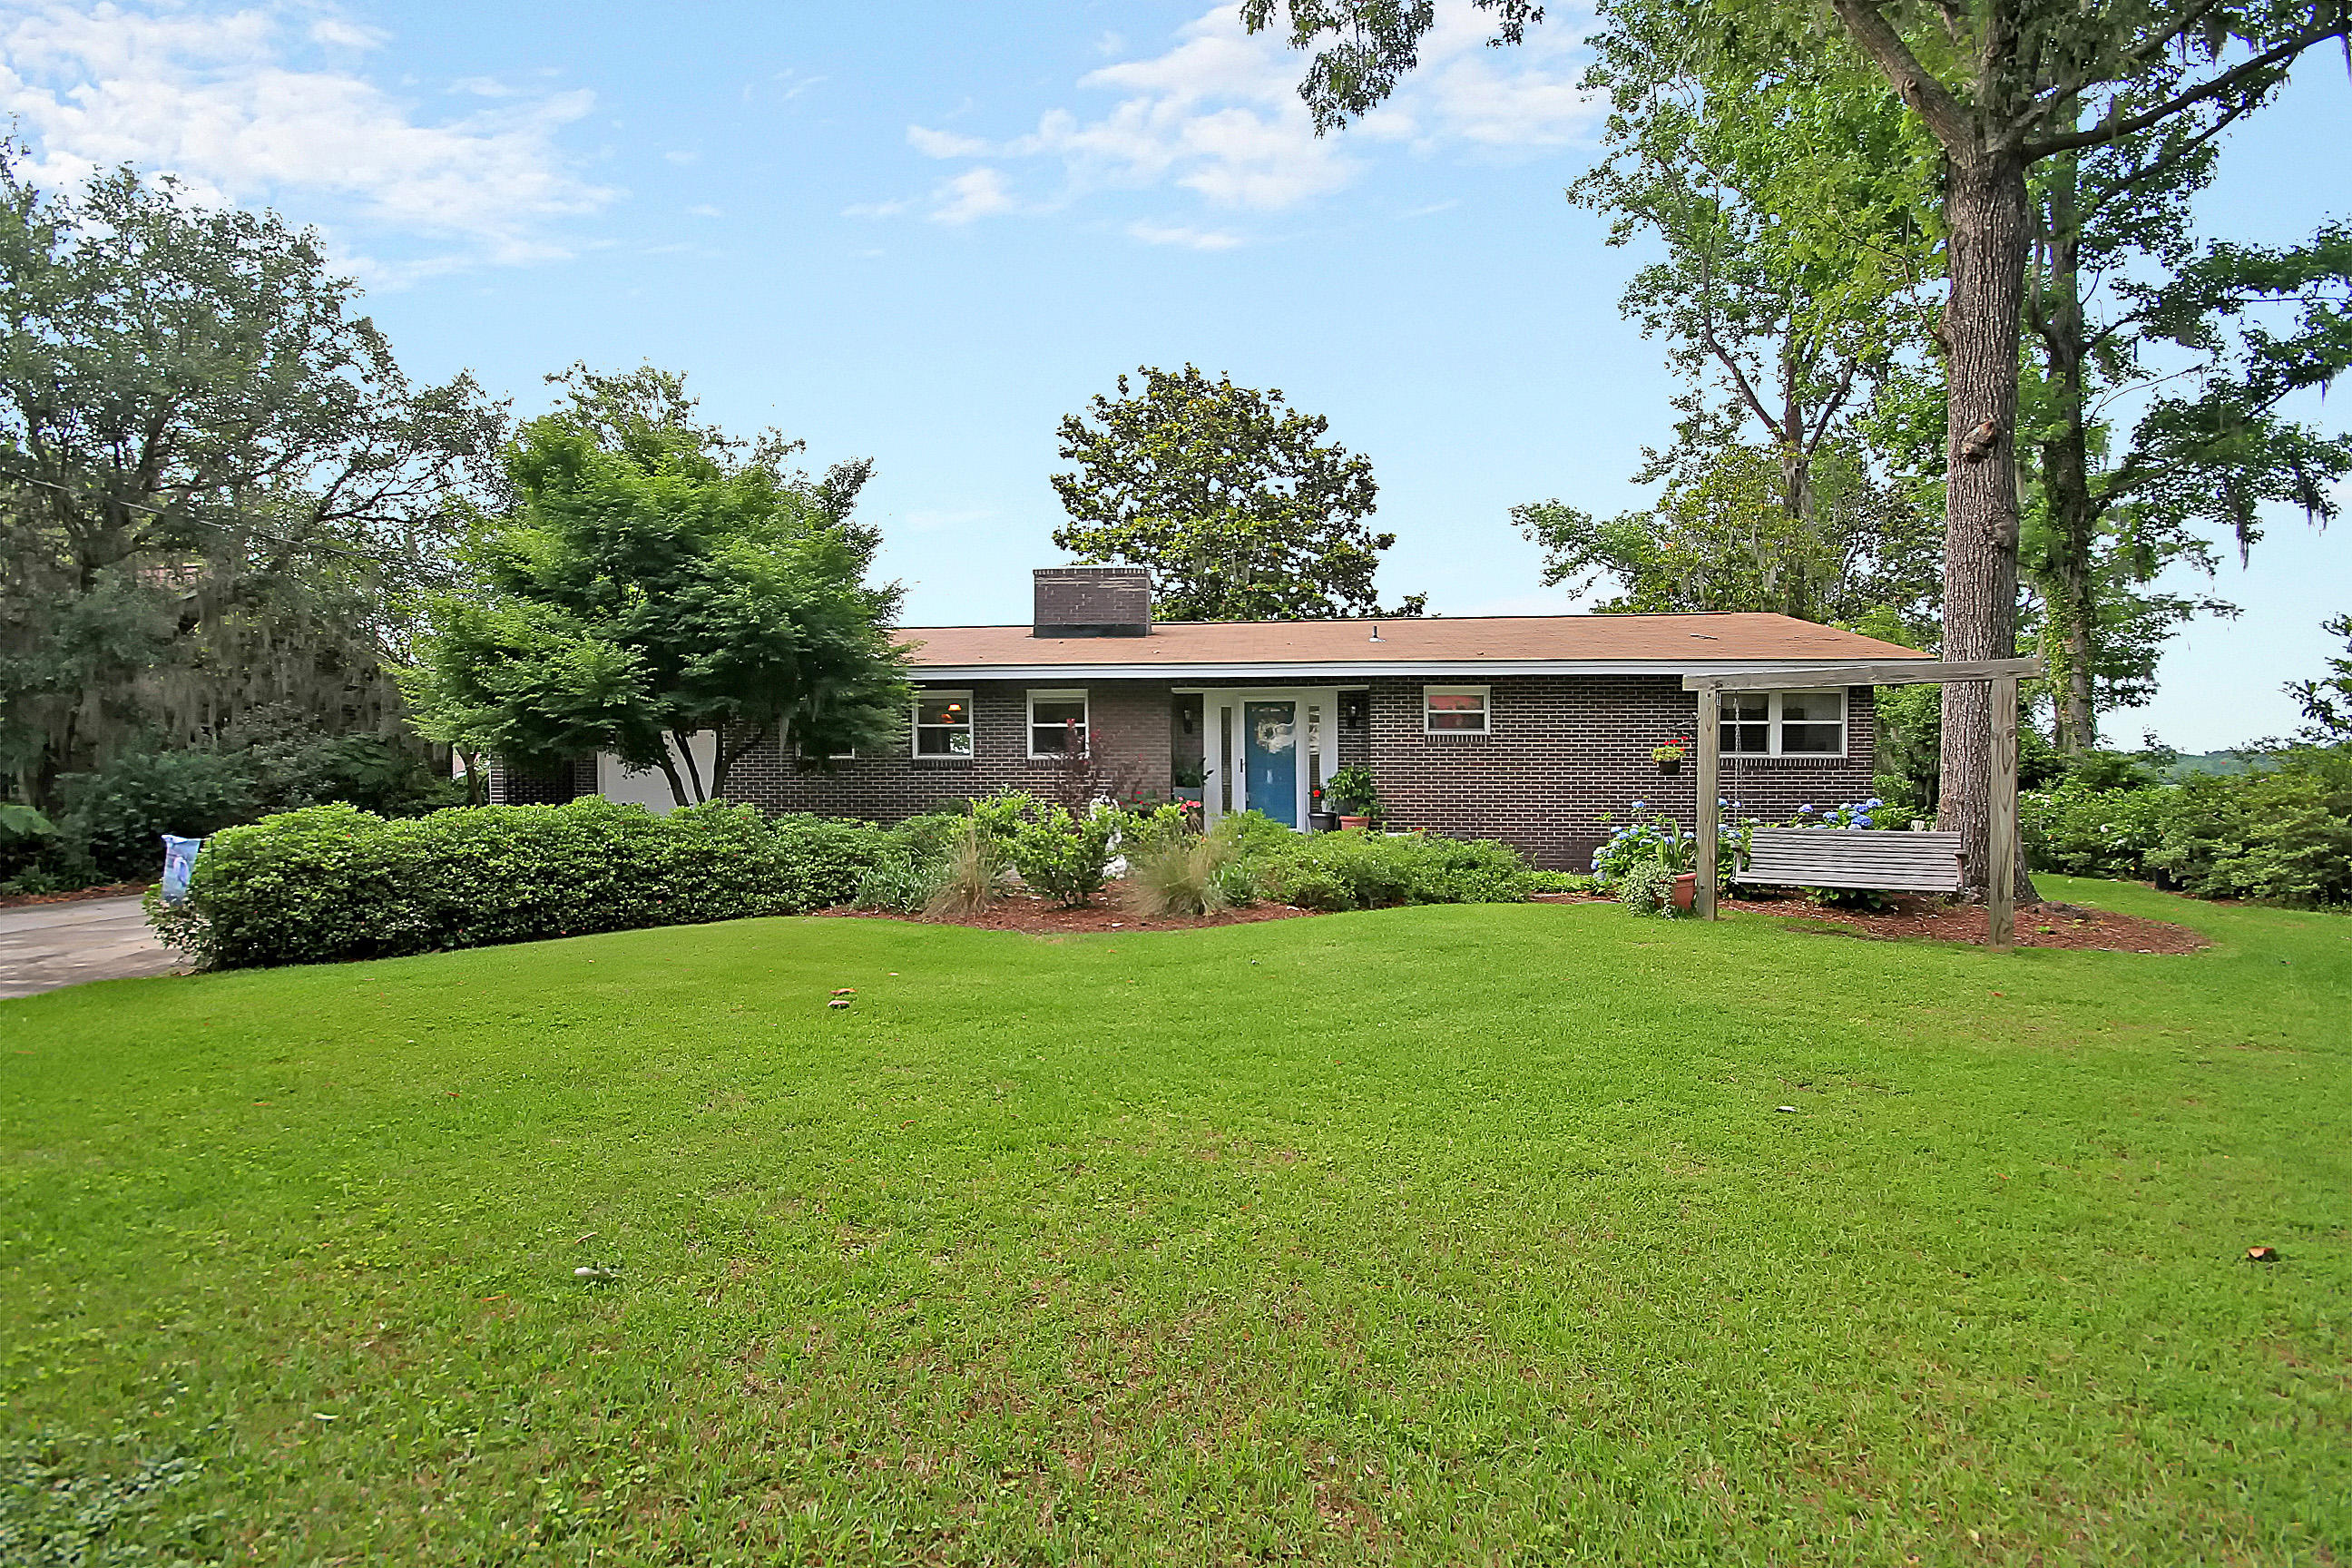 Photo of 1813 State Rd S-8-560, Moncks Corner, SC 29461